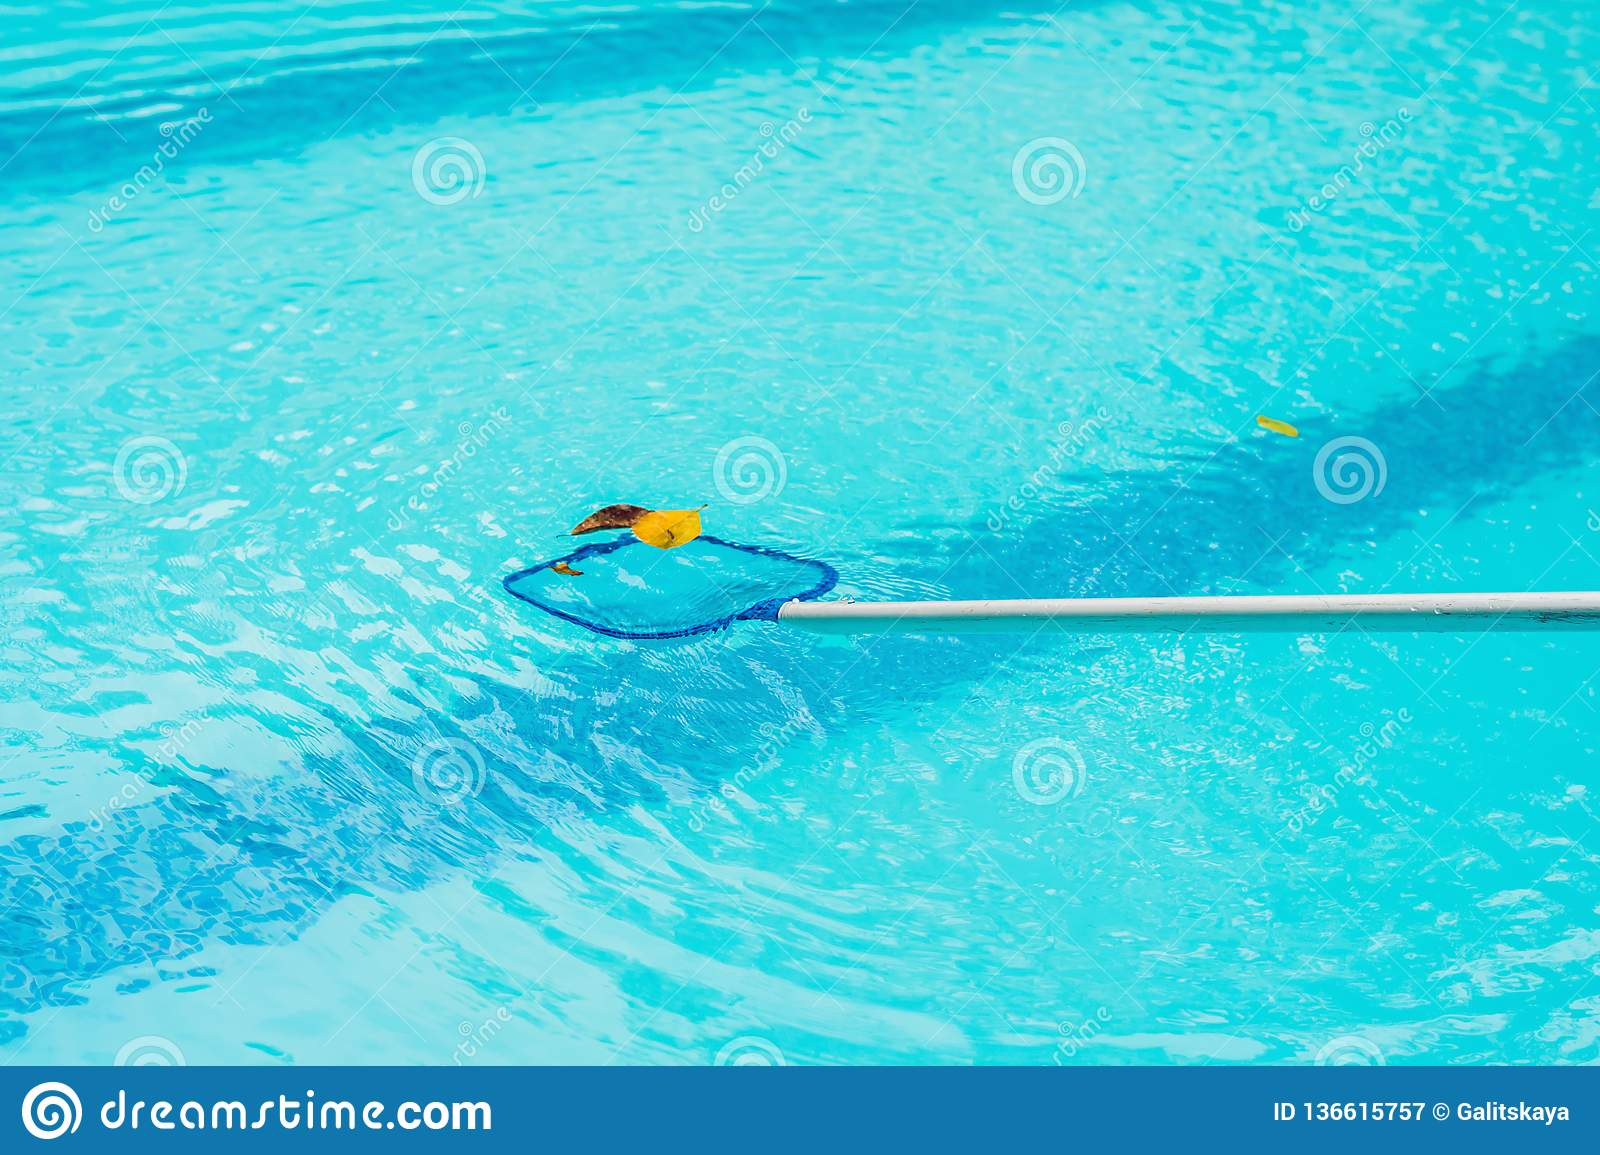 Cleaning Swimming Pool With Cleaning Net In The Morning ...